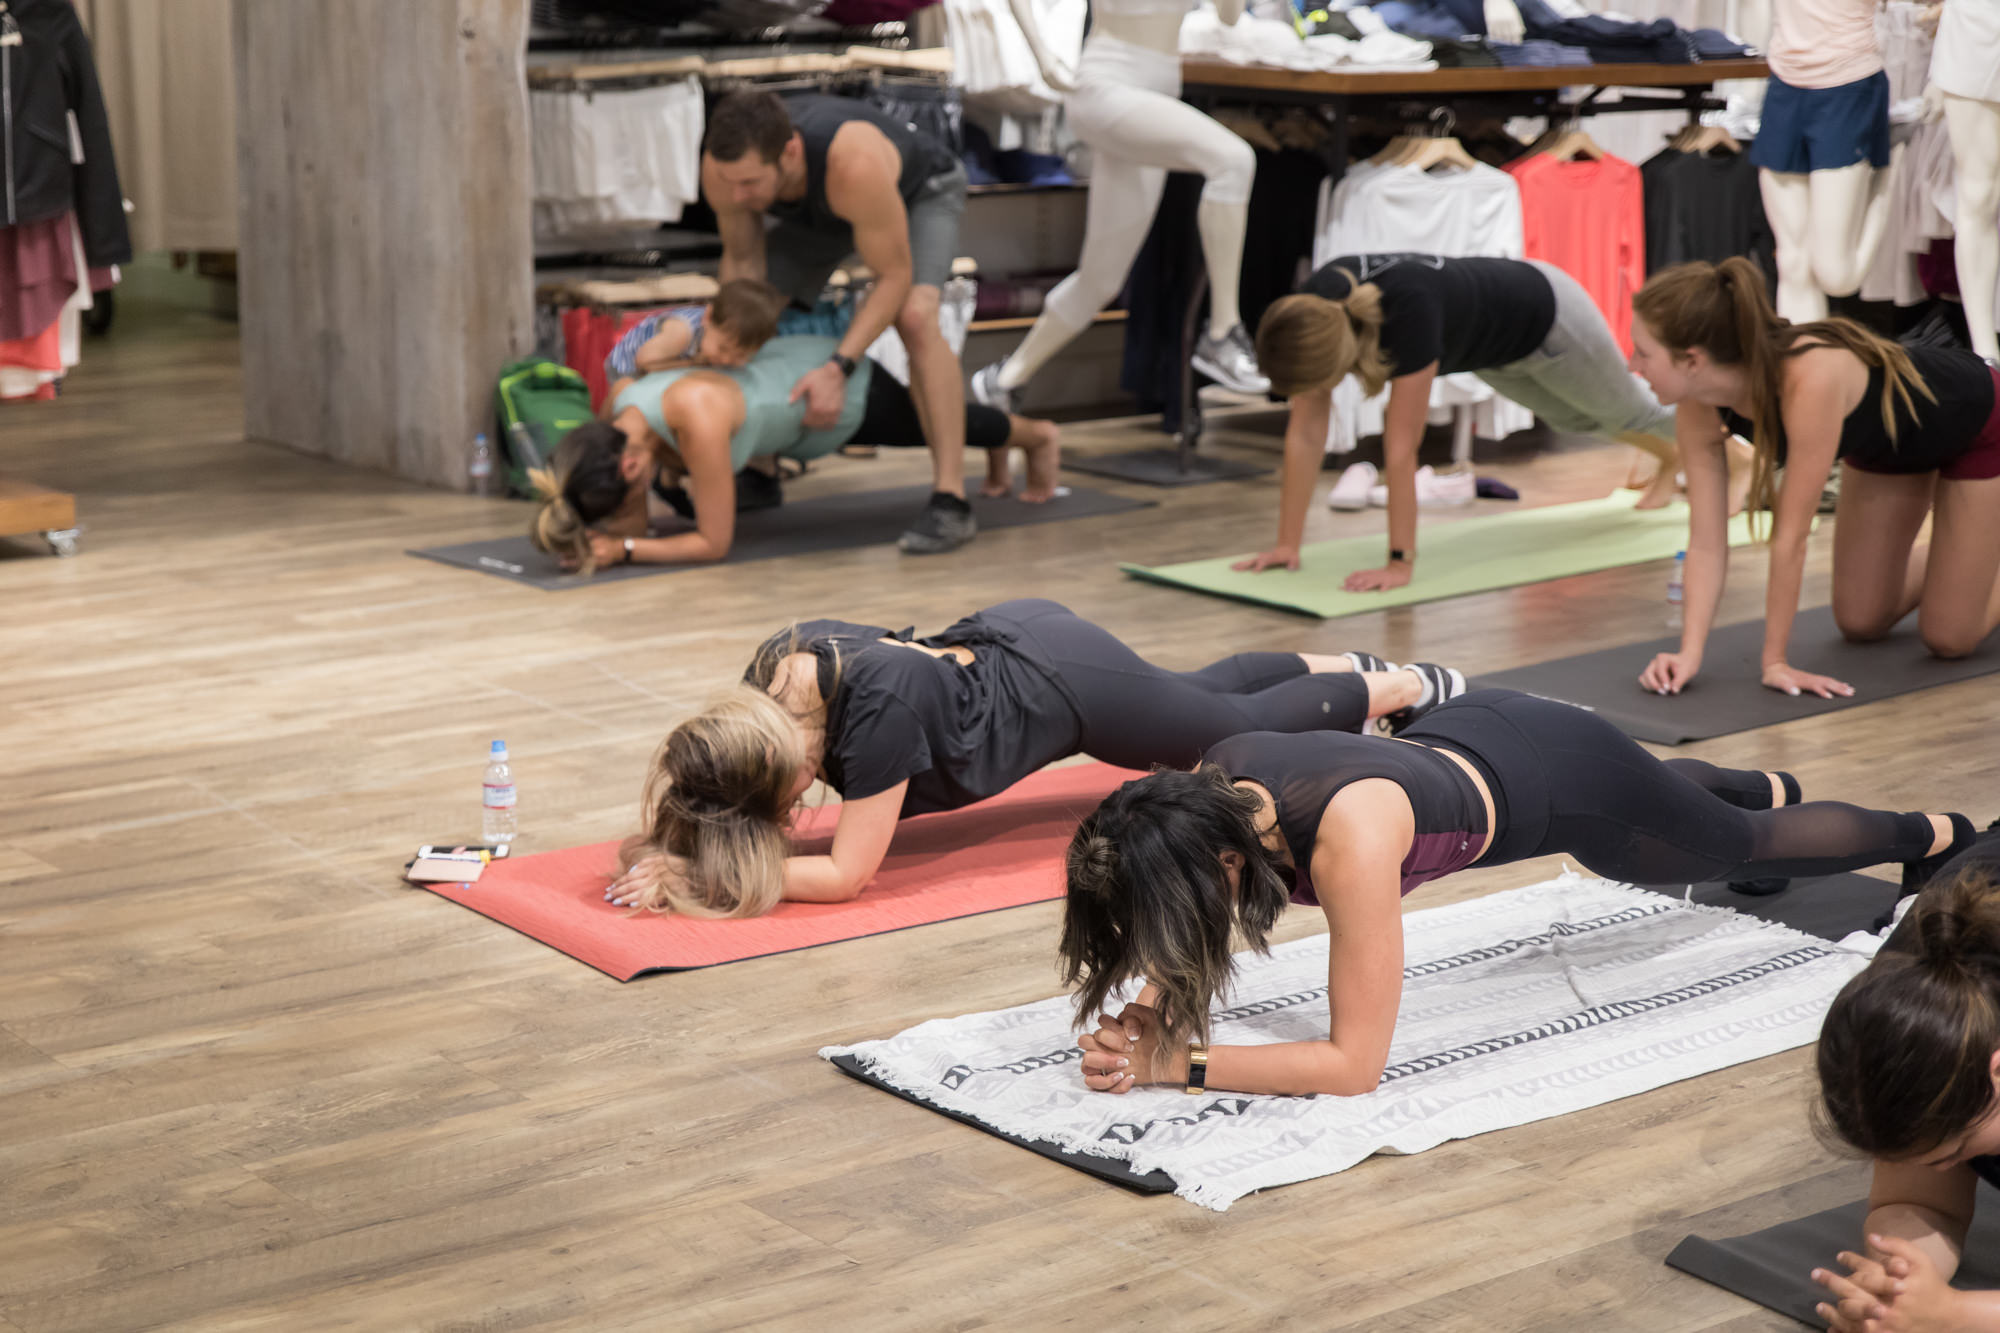 people-in-plank-hold-group-fitness-workout-athleta-store-san-jose.jpg